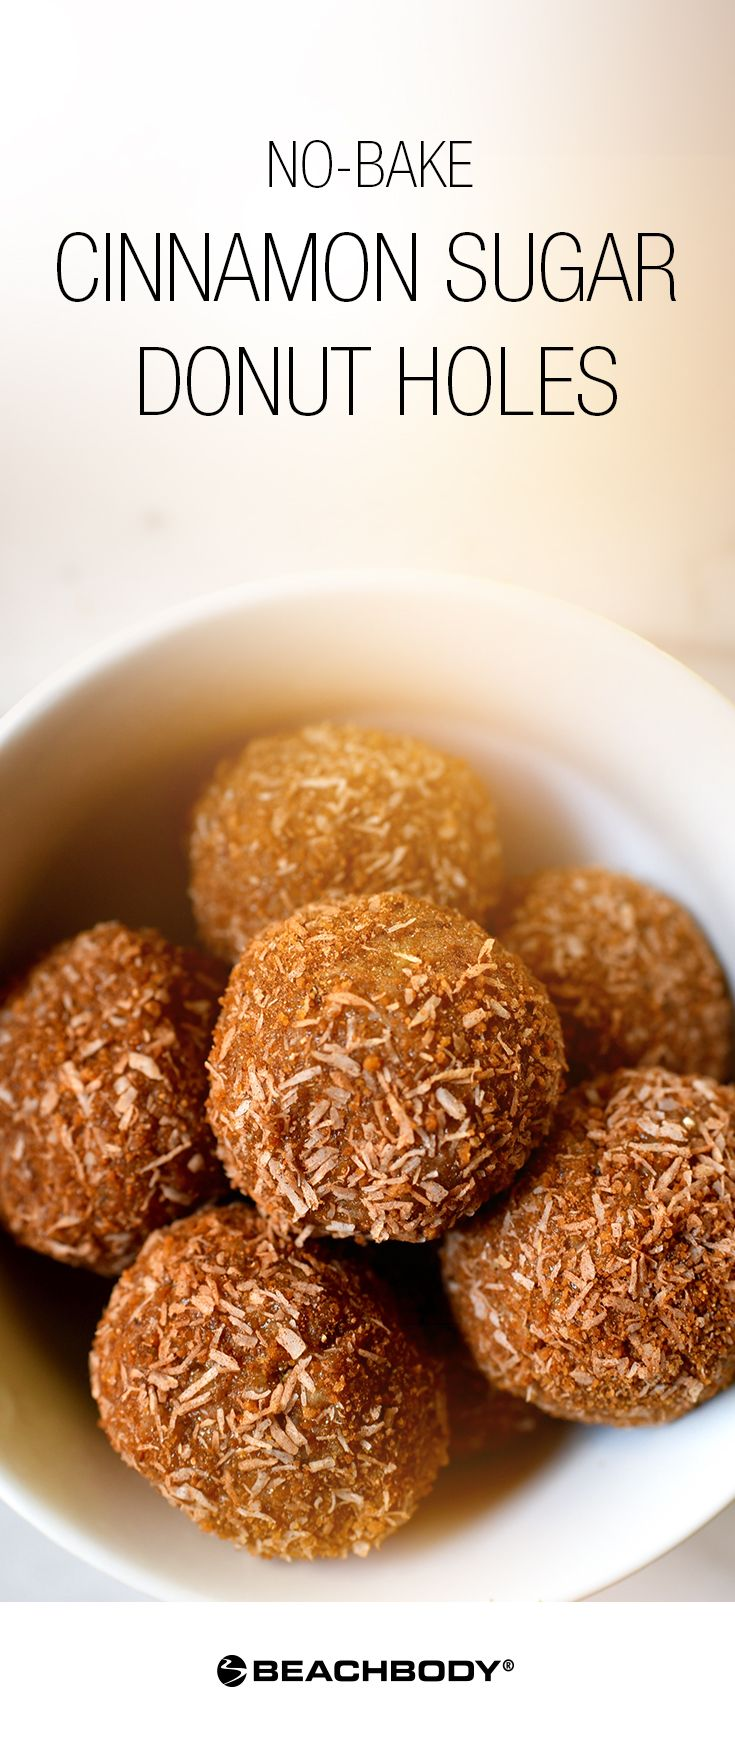 We know what you're thinking: It's a trick. Those can't taste like donut holes. But guess what? These little treats are surprisingly close to the real thing! With these Shakeology Donut Holes, you can treat yourself to a breakfast snack at any time of day without any guilt. // healthy recipes // shakeology recipes // no bake recipes // breakfast // snacks // desserts // donuts // Beachbody // BeachbodyBlog.com